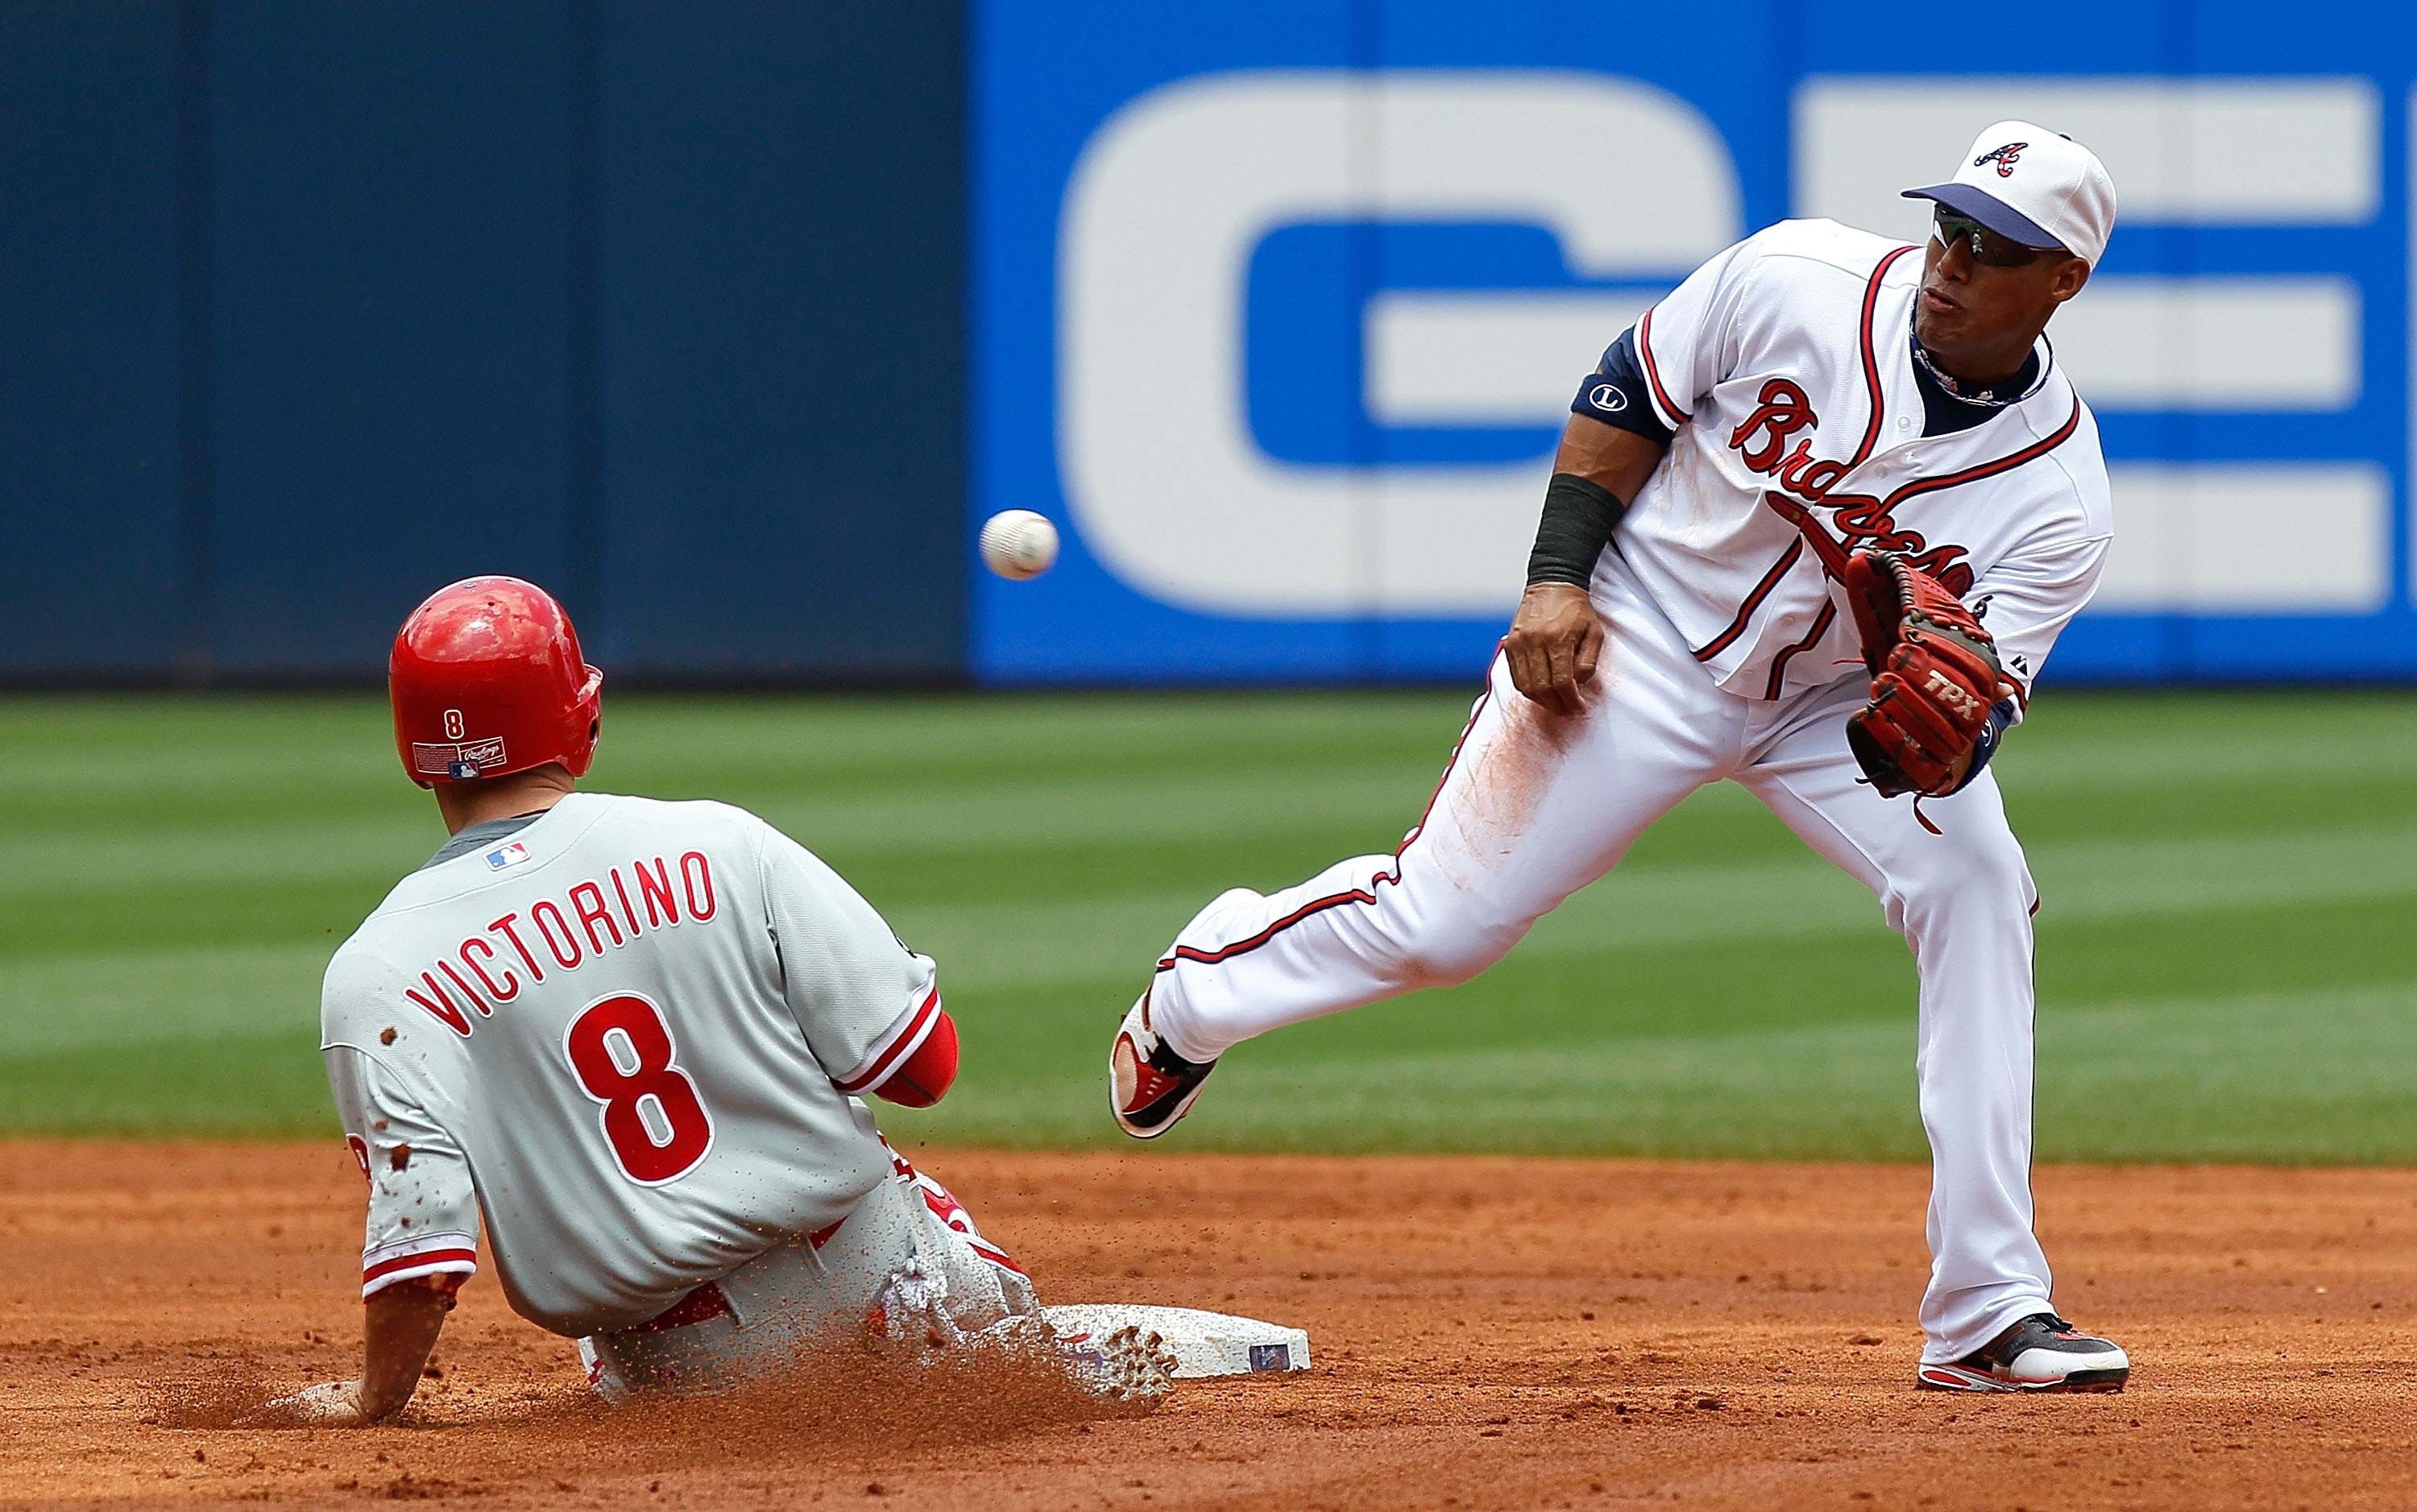 ATLANTA - MAY 31:  Shane Victorino #8 of the Philadelphia Phillies slides safely into second base against Yunel Escobar #19 of the Atlanta Braves at Turner Field on May 31, 2010 in Atlanta, Georgia.  (Photo by Kevin C. Cox/Getty Images)